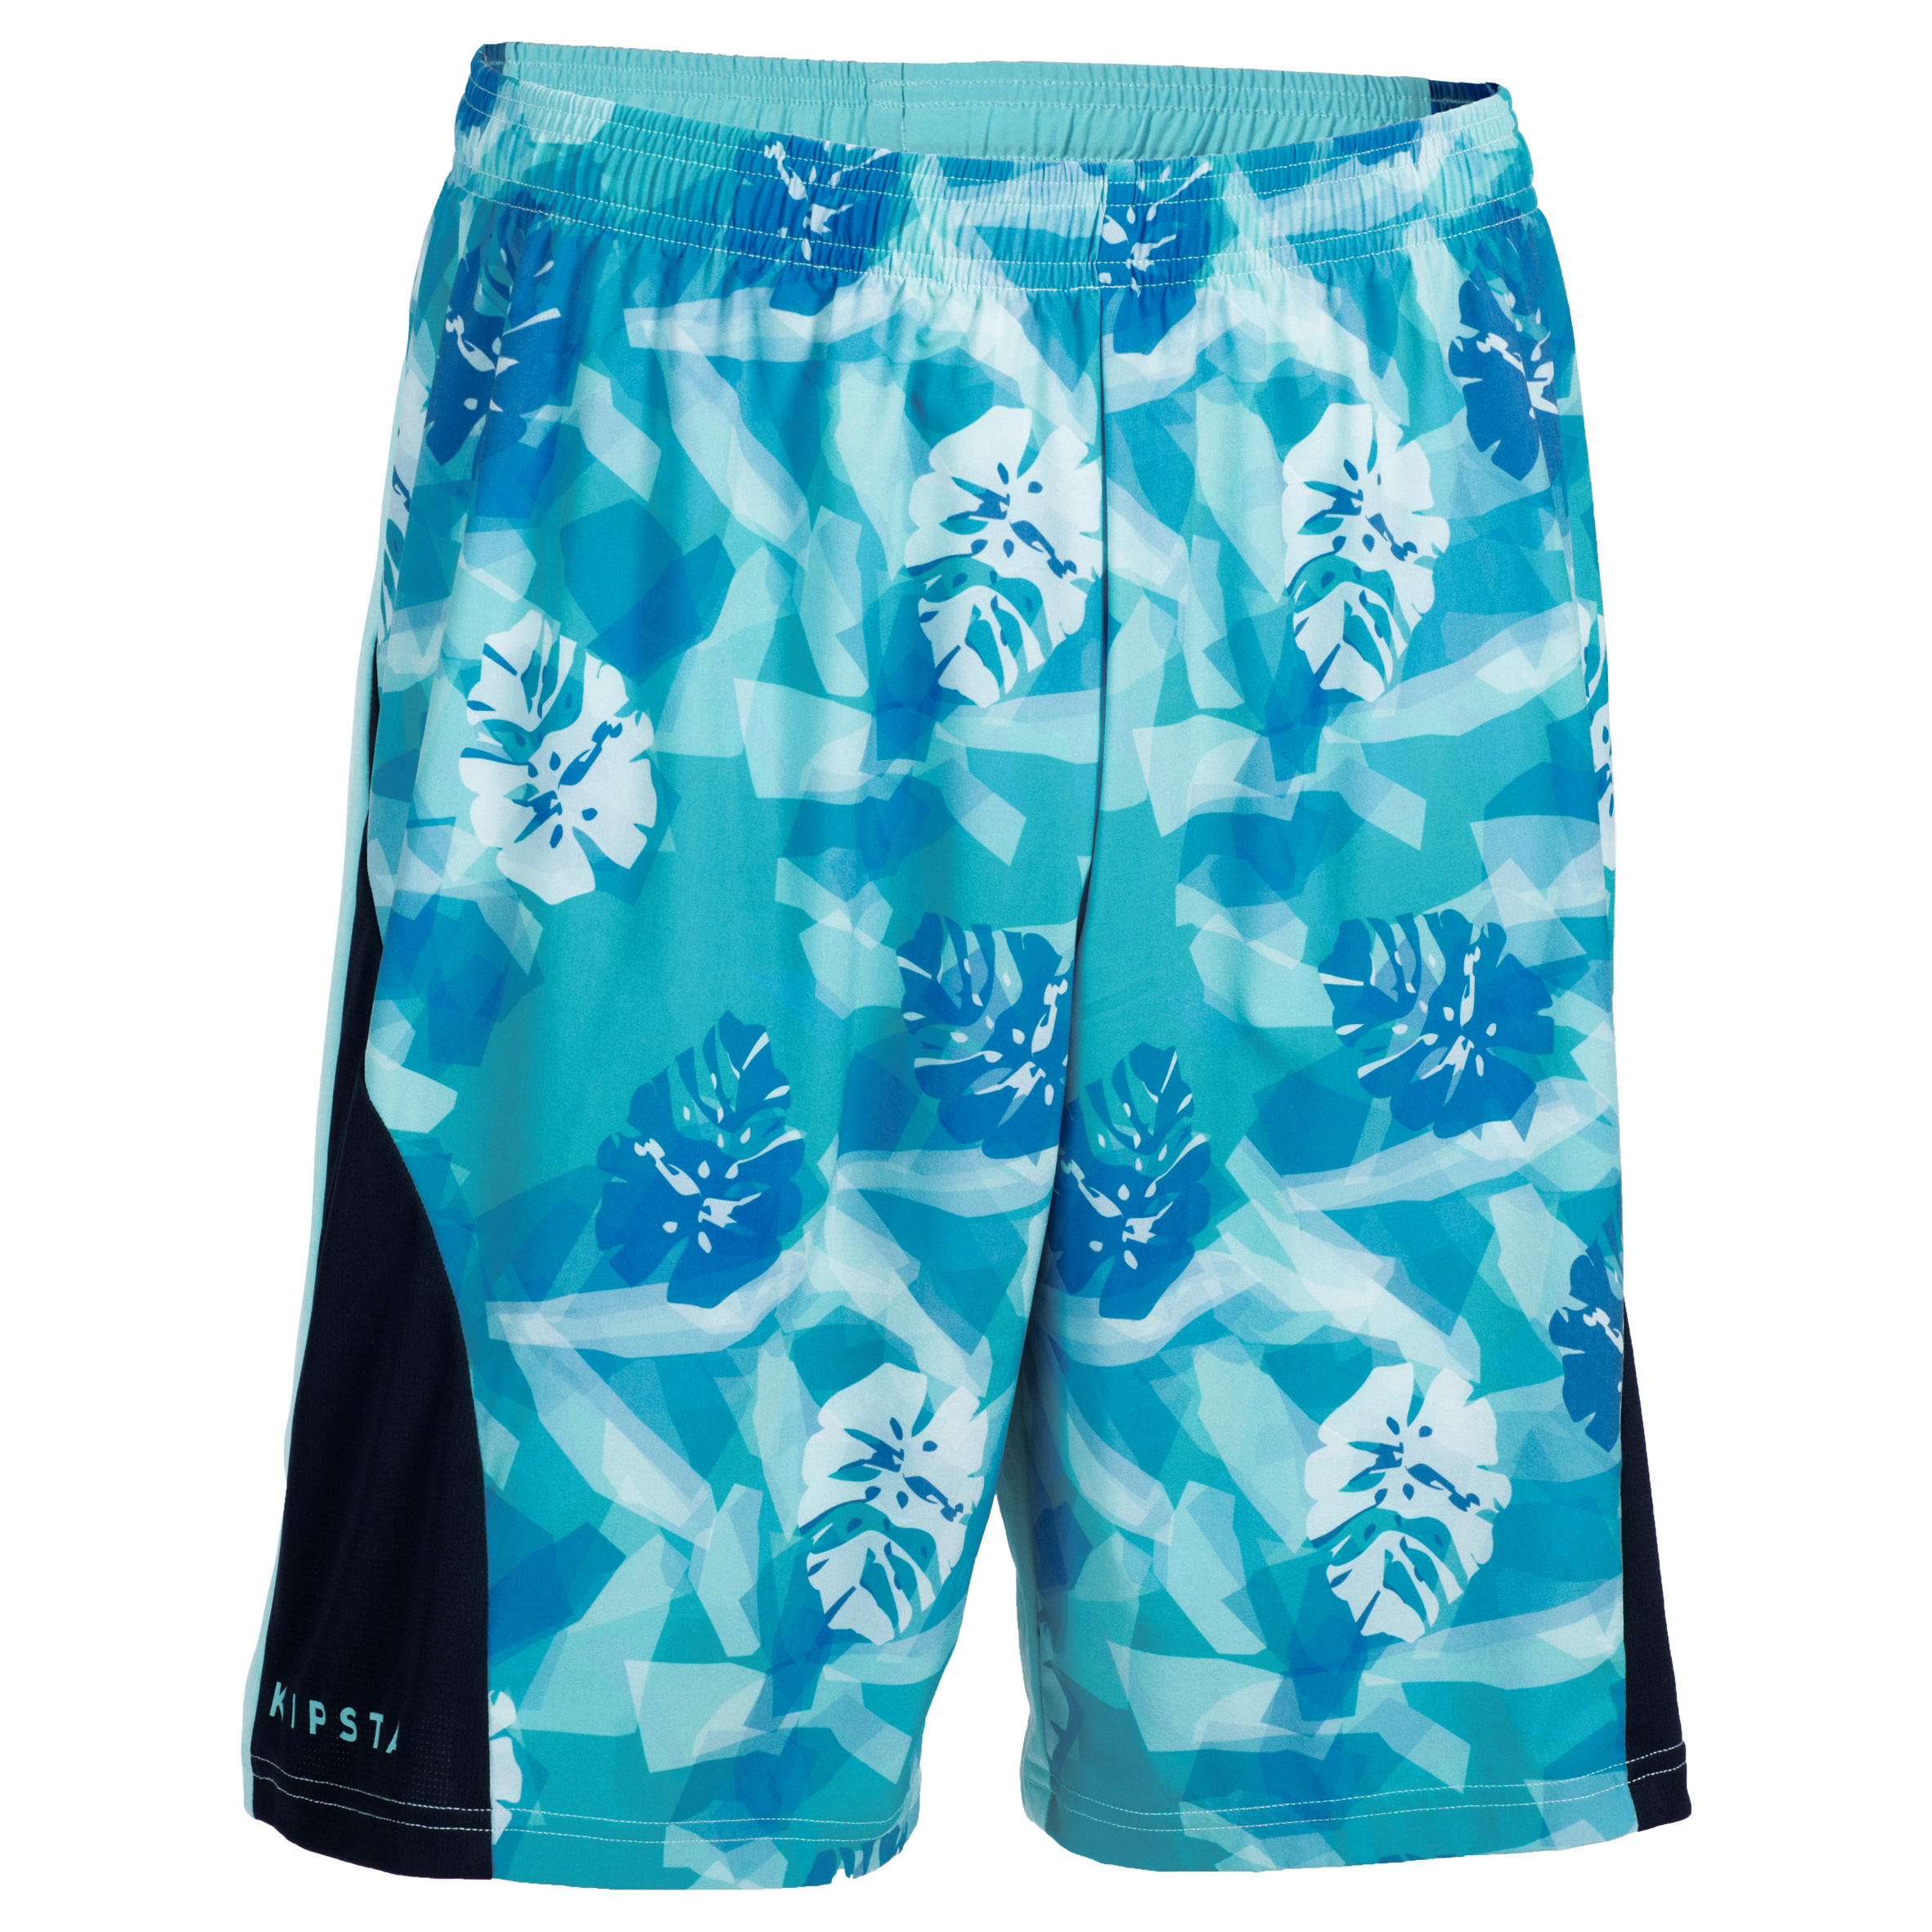 Short de volleyball de plage homme VP 500 navy